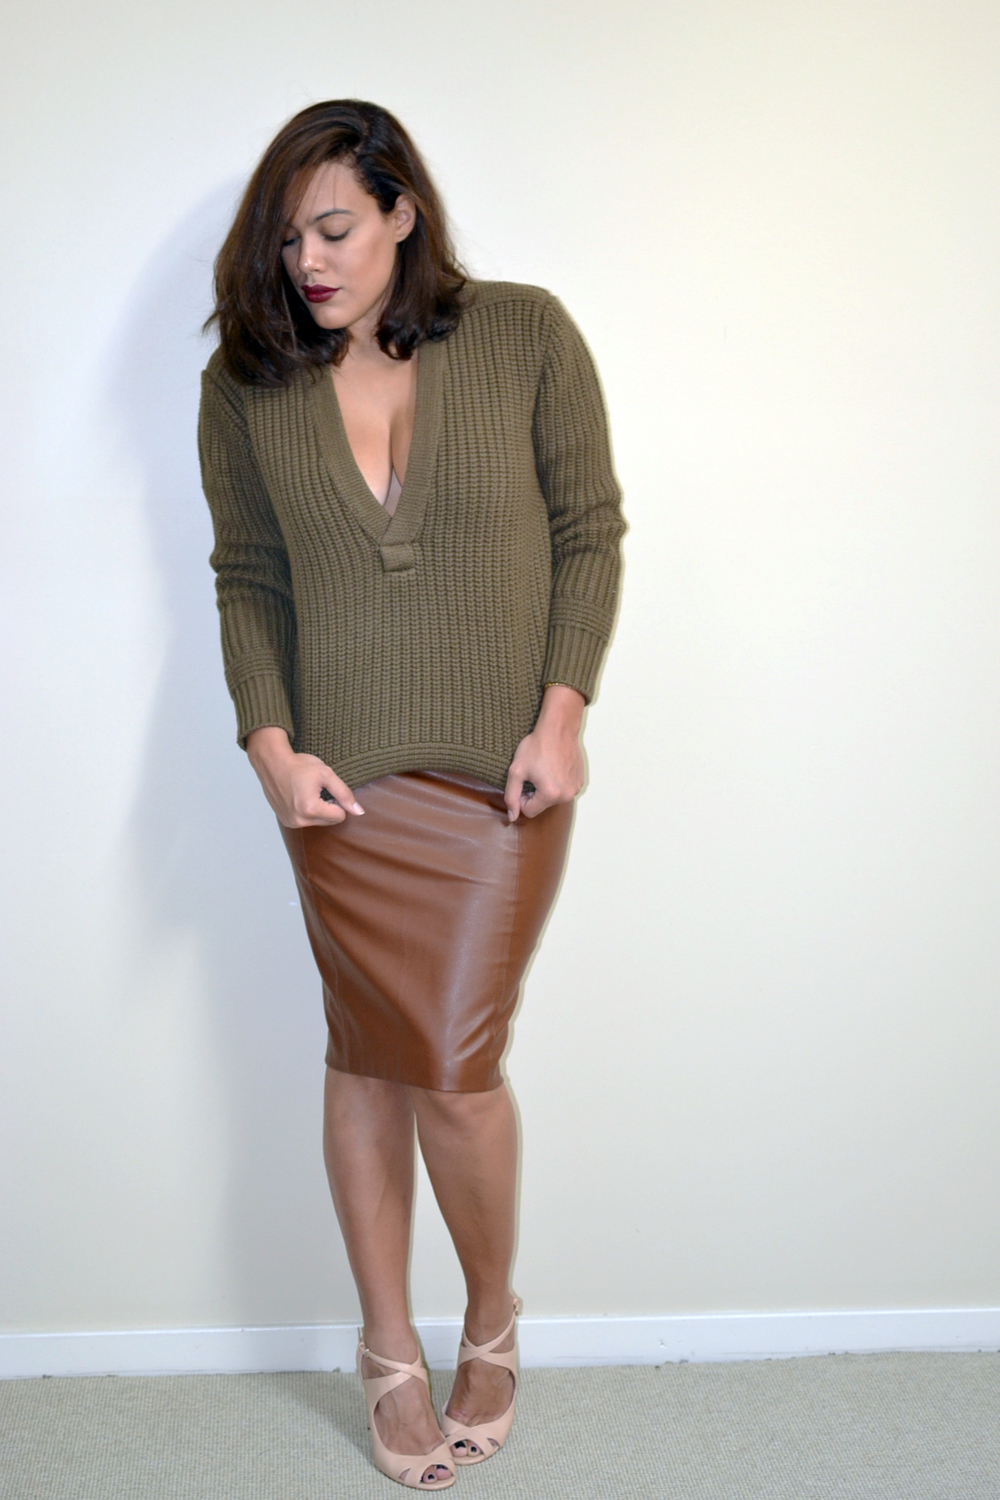 hm-studio-collection-aw-14-olive-green-vneck-sweater-zara-brown-leather-skirt.jpg